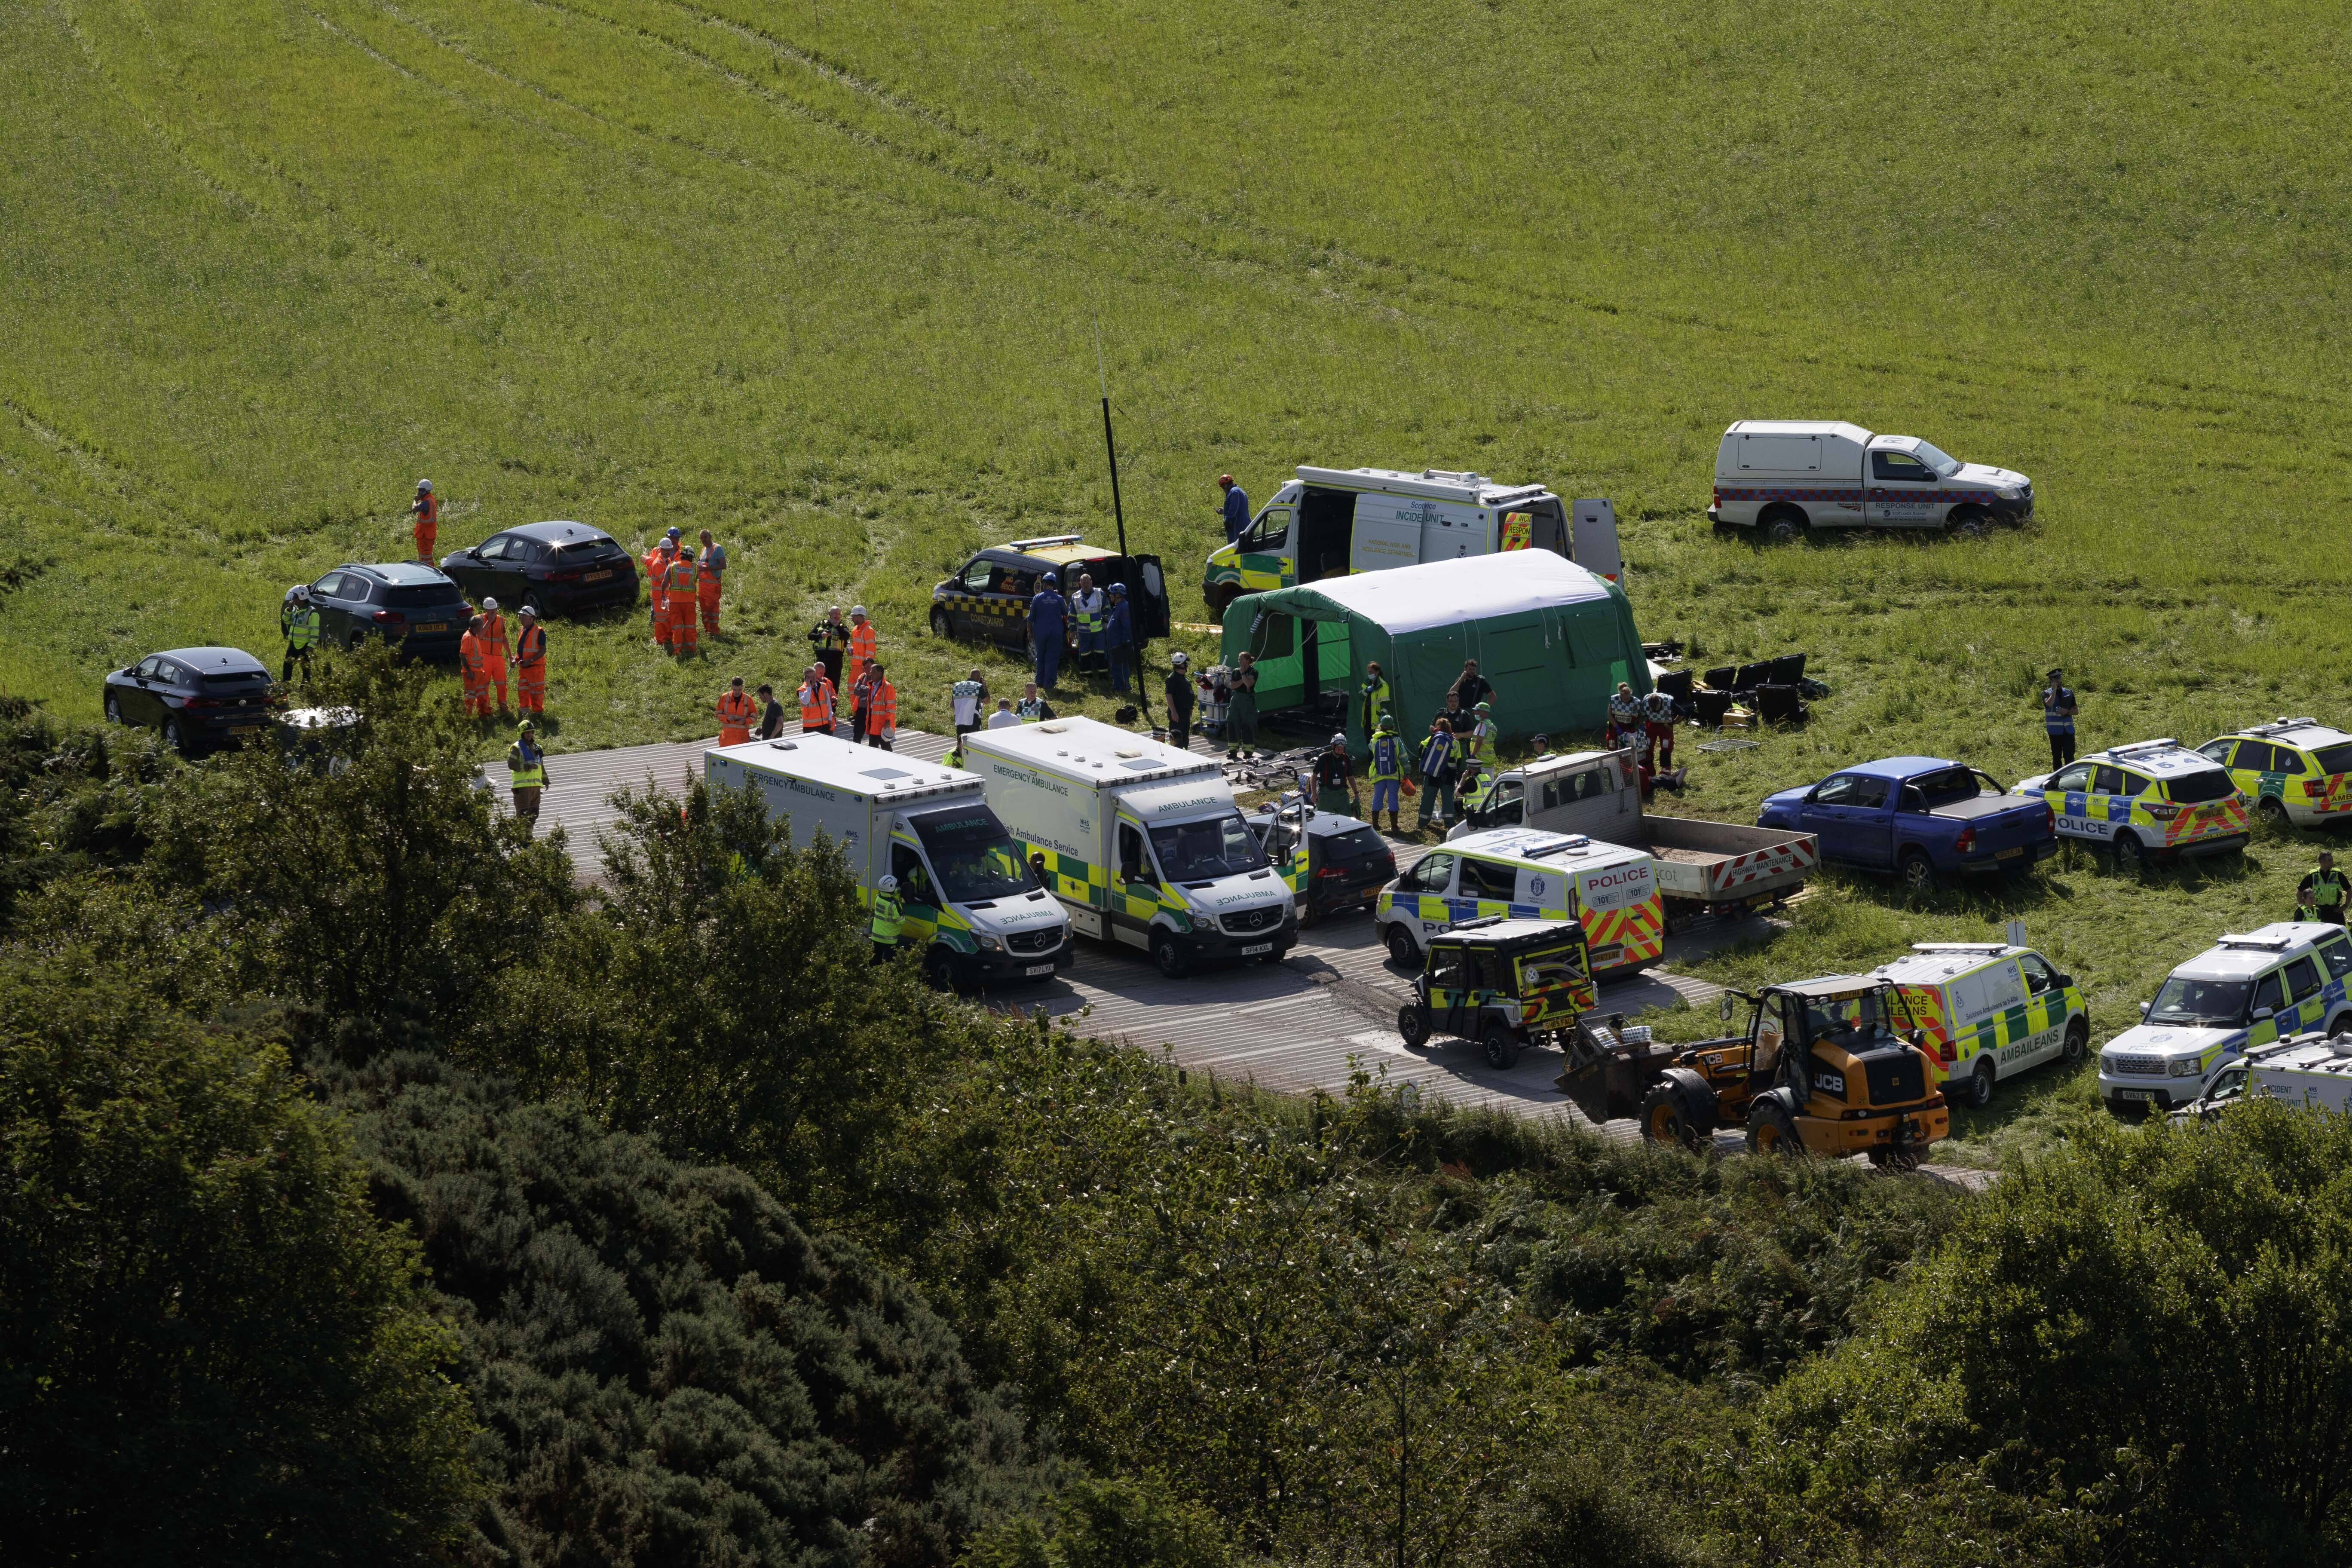 Emergency services attend the scene of a derailed train in Stonehaven, Scotland, Wednesday Aug. 12, 2020. Police and paramedics were responding Wednesday to a train derailment in northeast Scotland, where smoke could be seen rising from the site. Officials said there were reports of serious injuries. The hilly area was hit by storms and flash flooding overnight. (Ross Johnston/Newsline-media via AP)